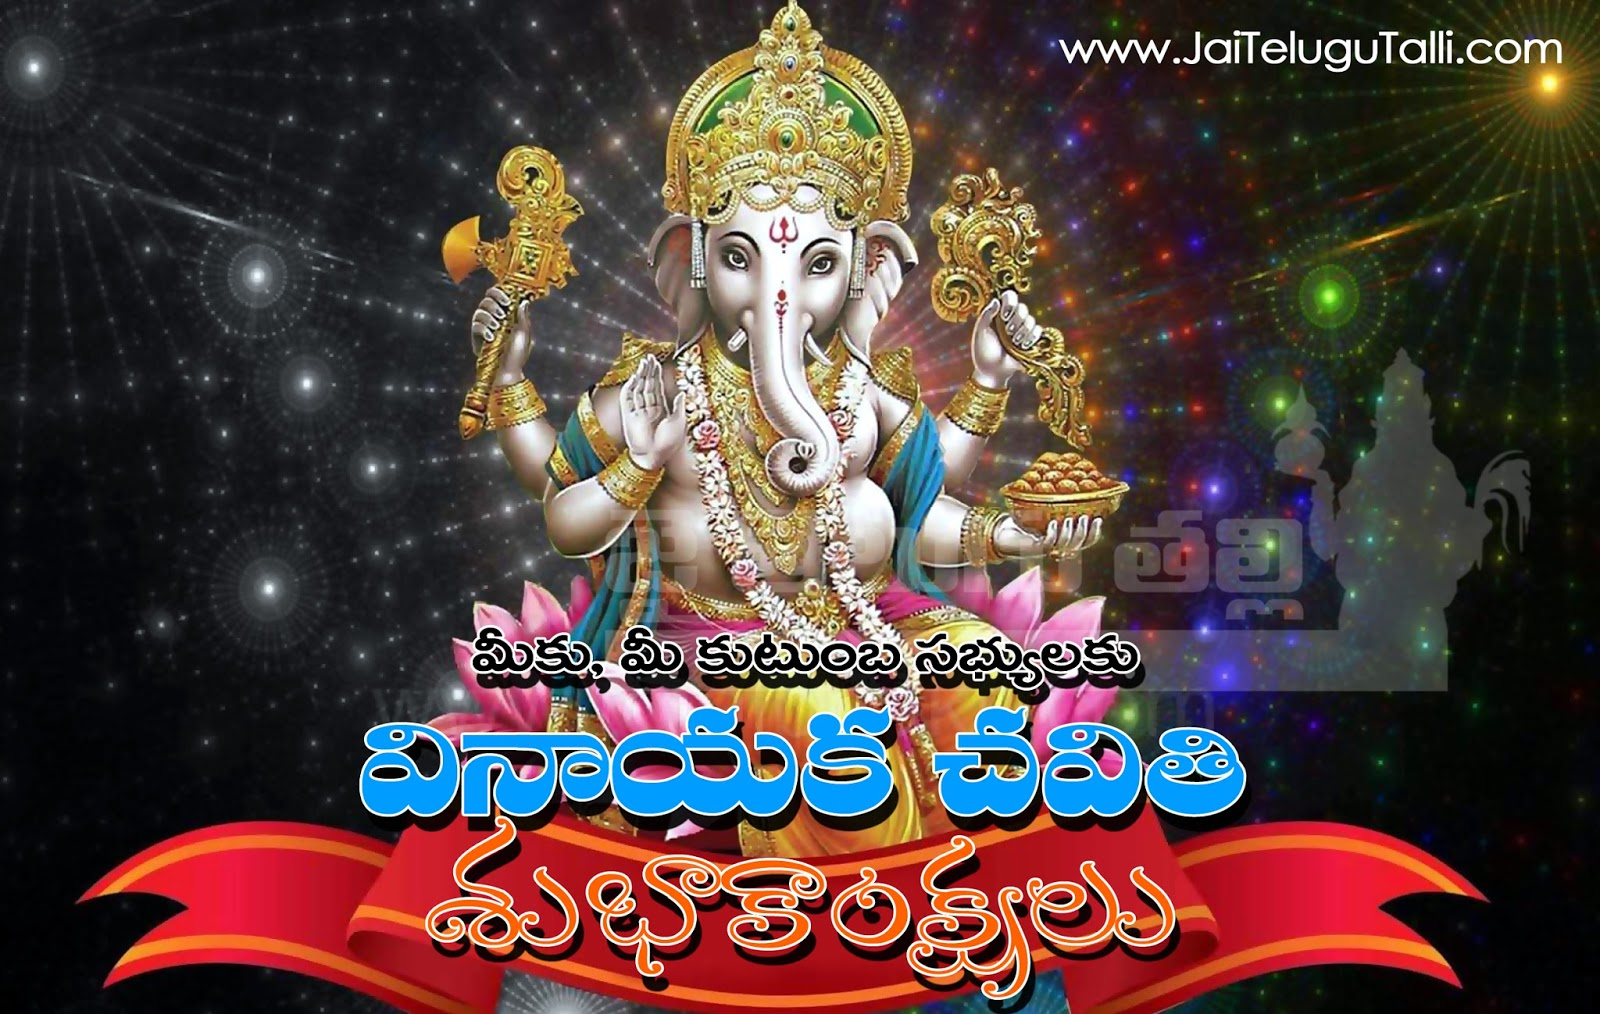 Happy Vinayaka Chaturthi Images And Wishes In Telugu Wallpapers With